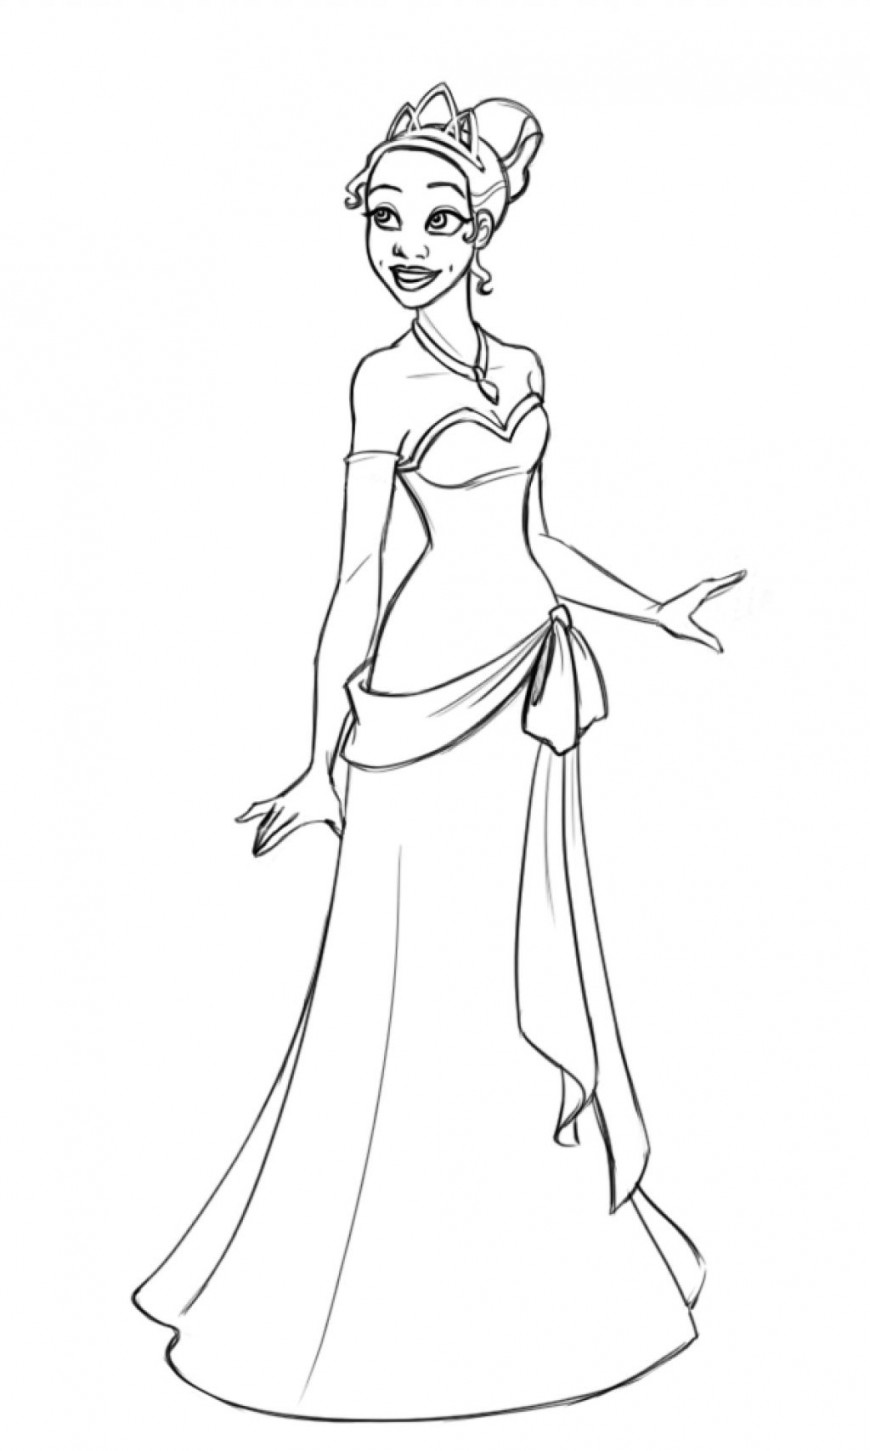 Princess tiana coloring pages download and print for free